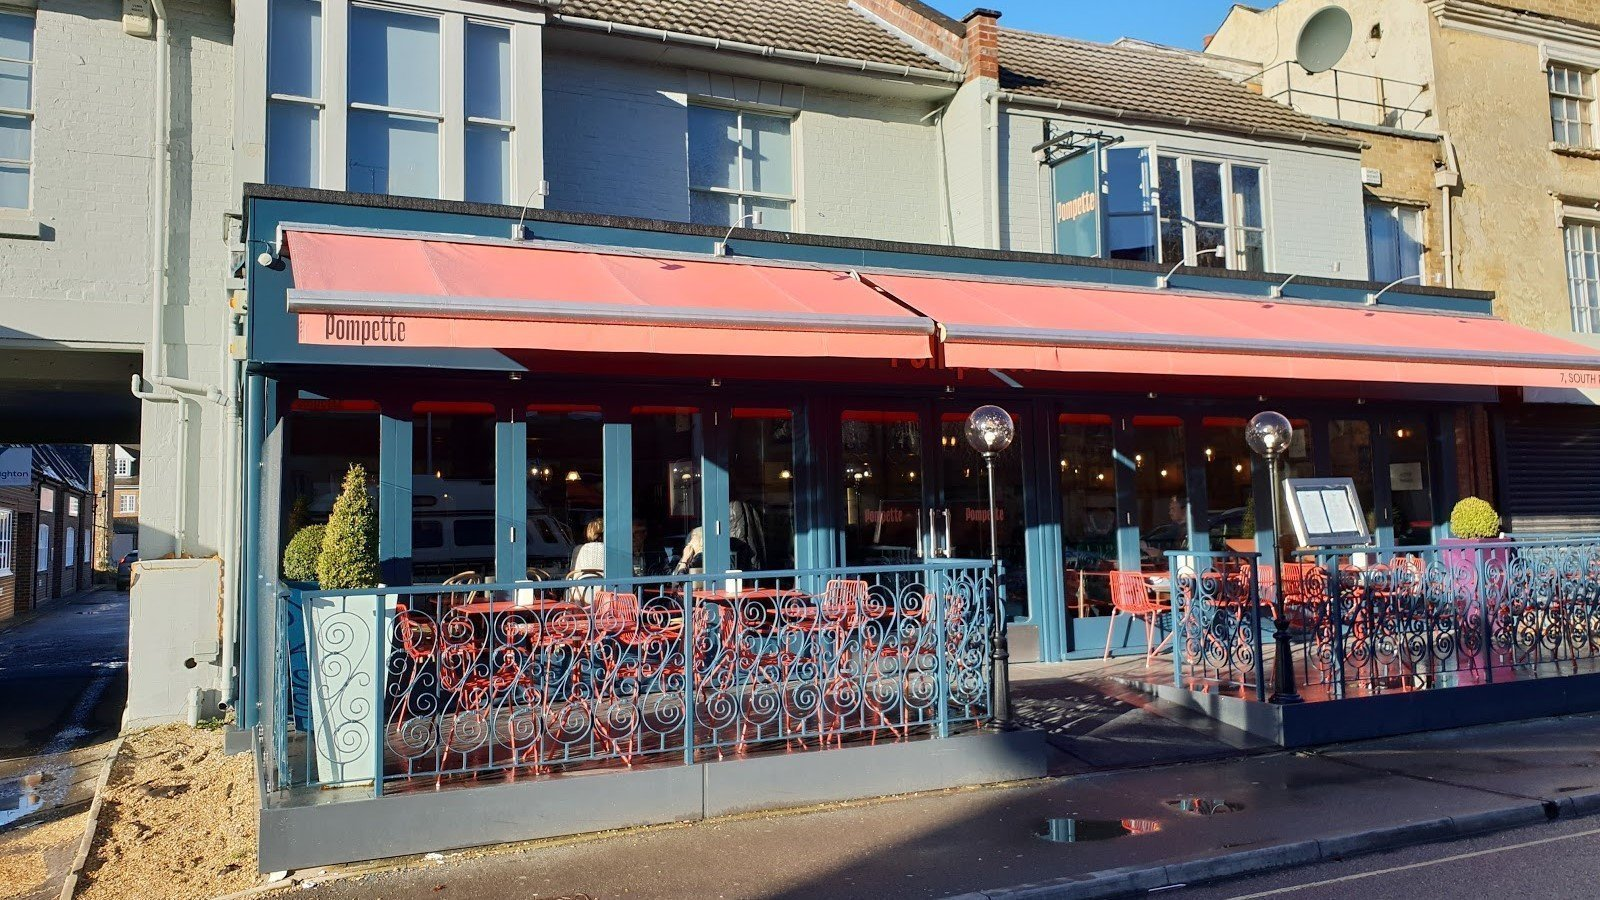 Pompette Restaurant South Parade, Summertown, Oxford